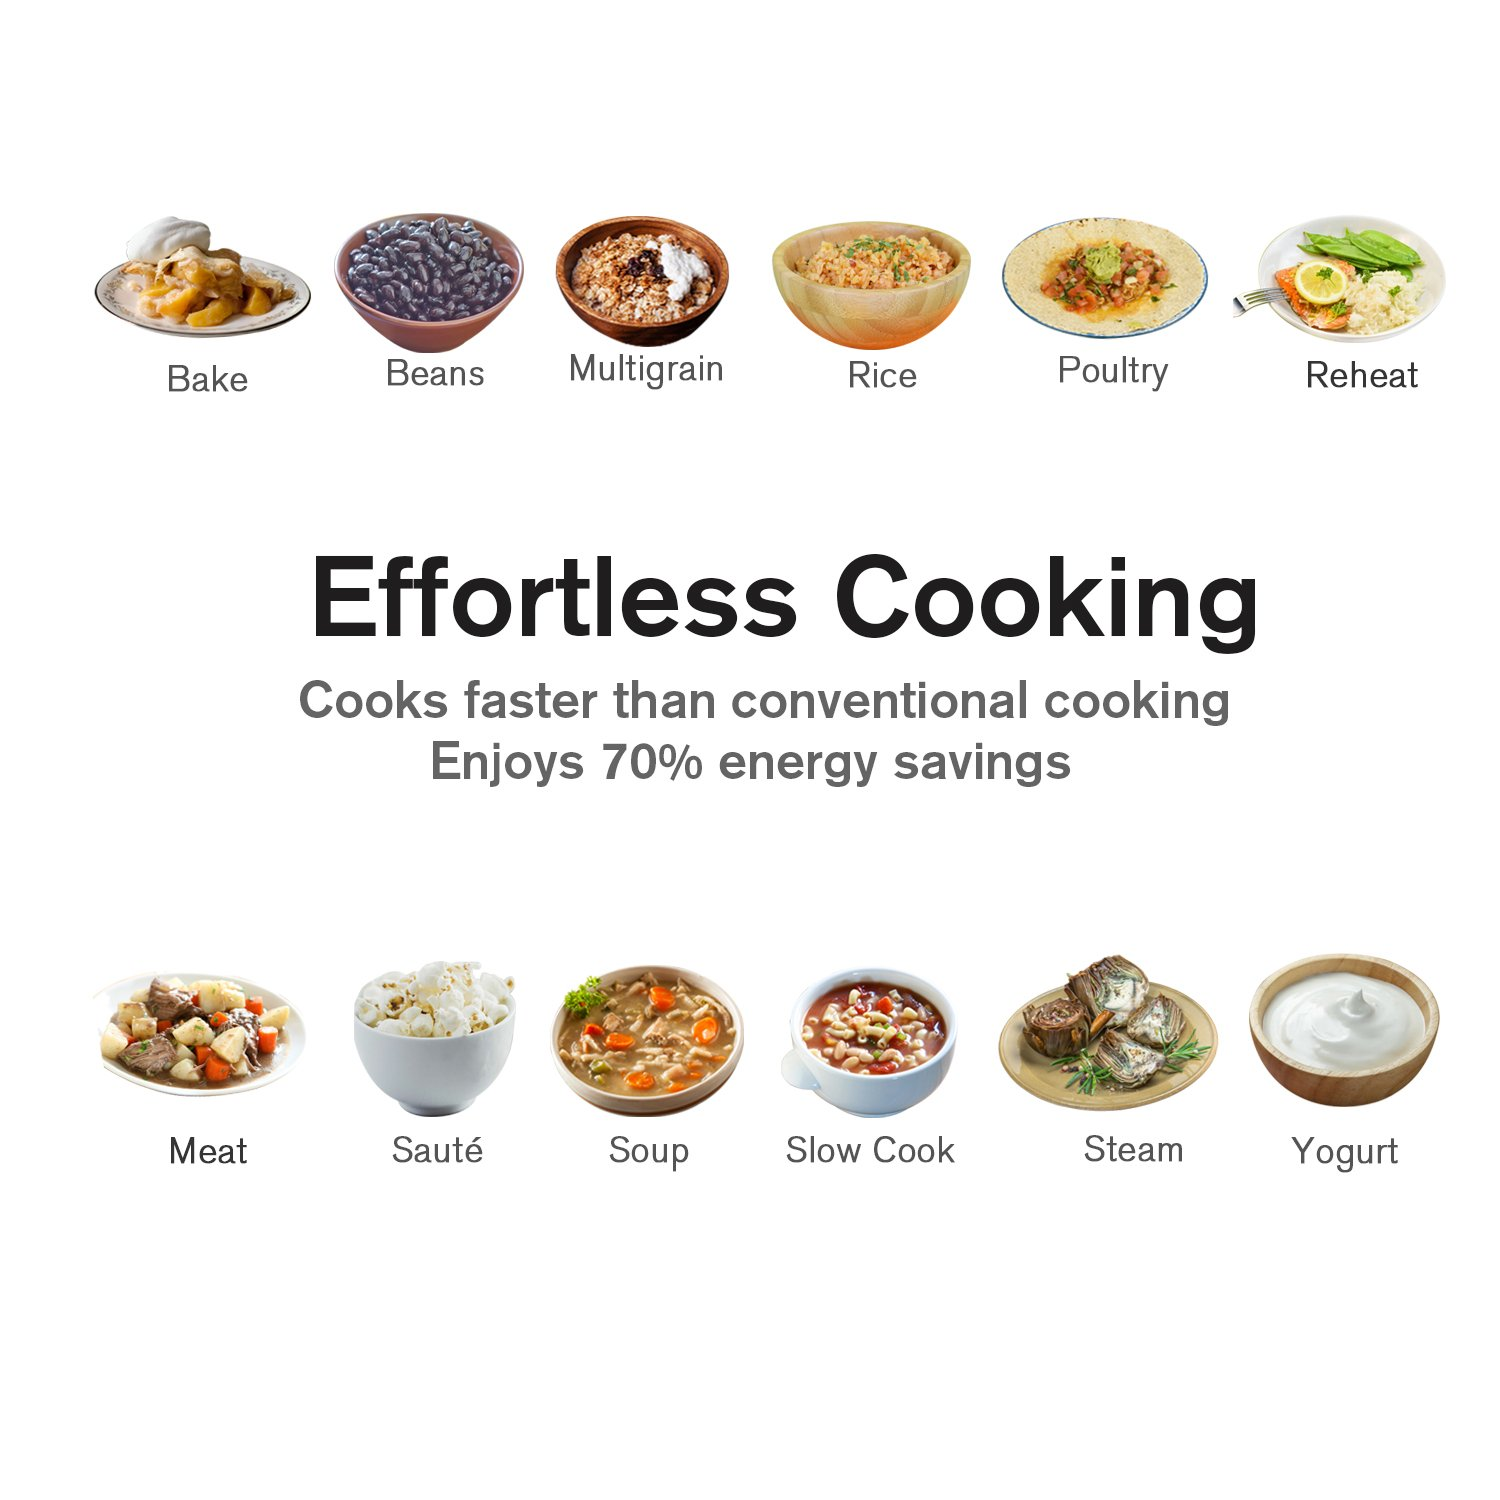 COSORI 6 Qt 7-in-1 Multi-Functional Programmable Pressure Cooker, Slow Cooker, Rice Cooker, Yogurt Maker, Sauté, Steamer & Warmer, Include Glass Lid, Sealing Ring and Recipe Book, 1000W by COSORI (Image #6)